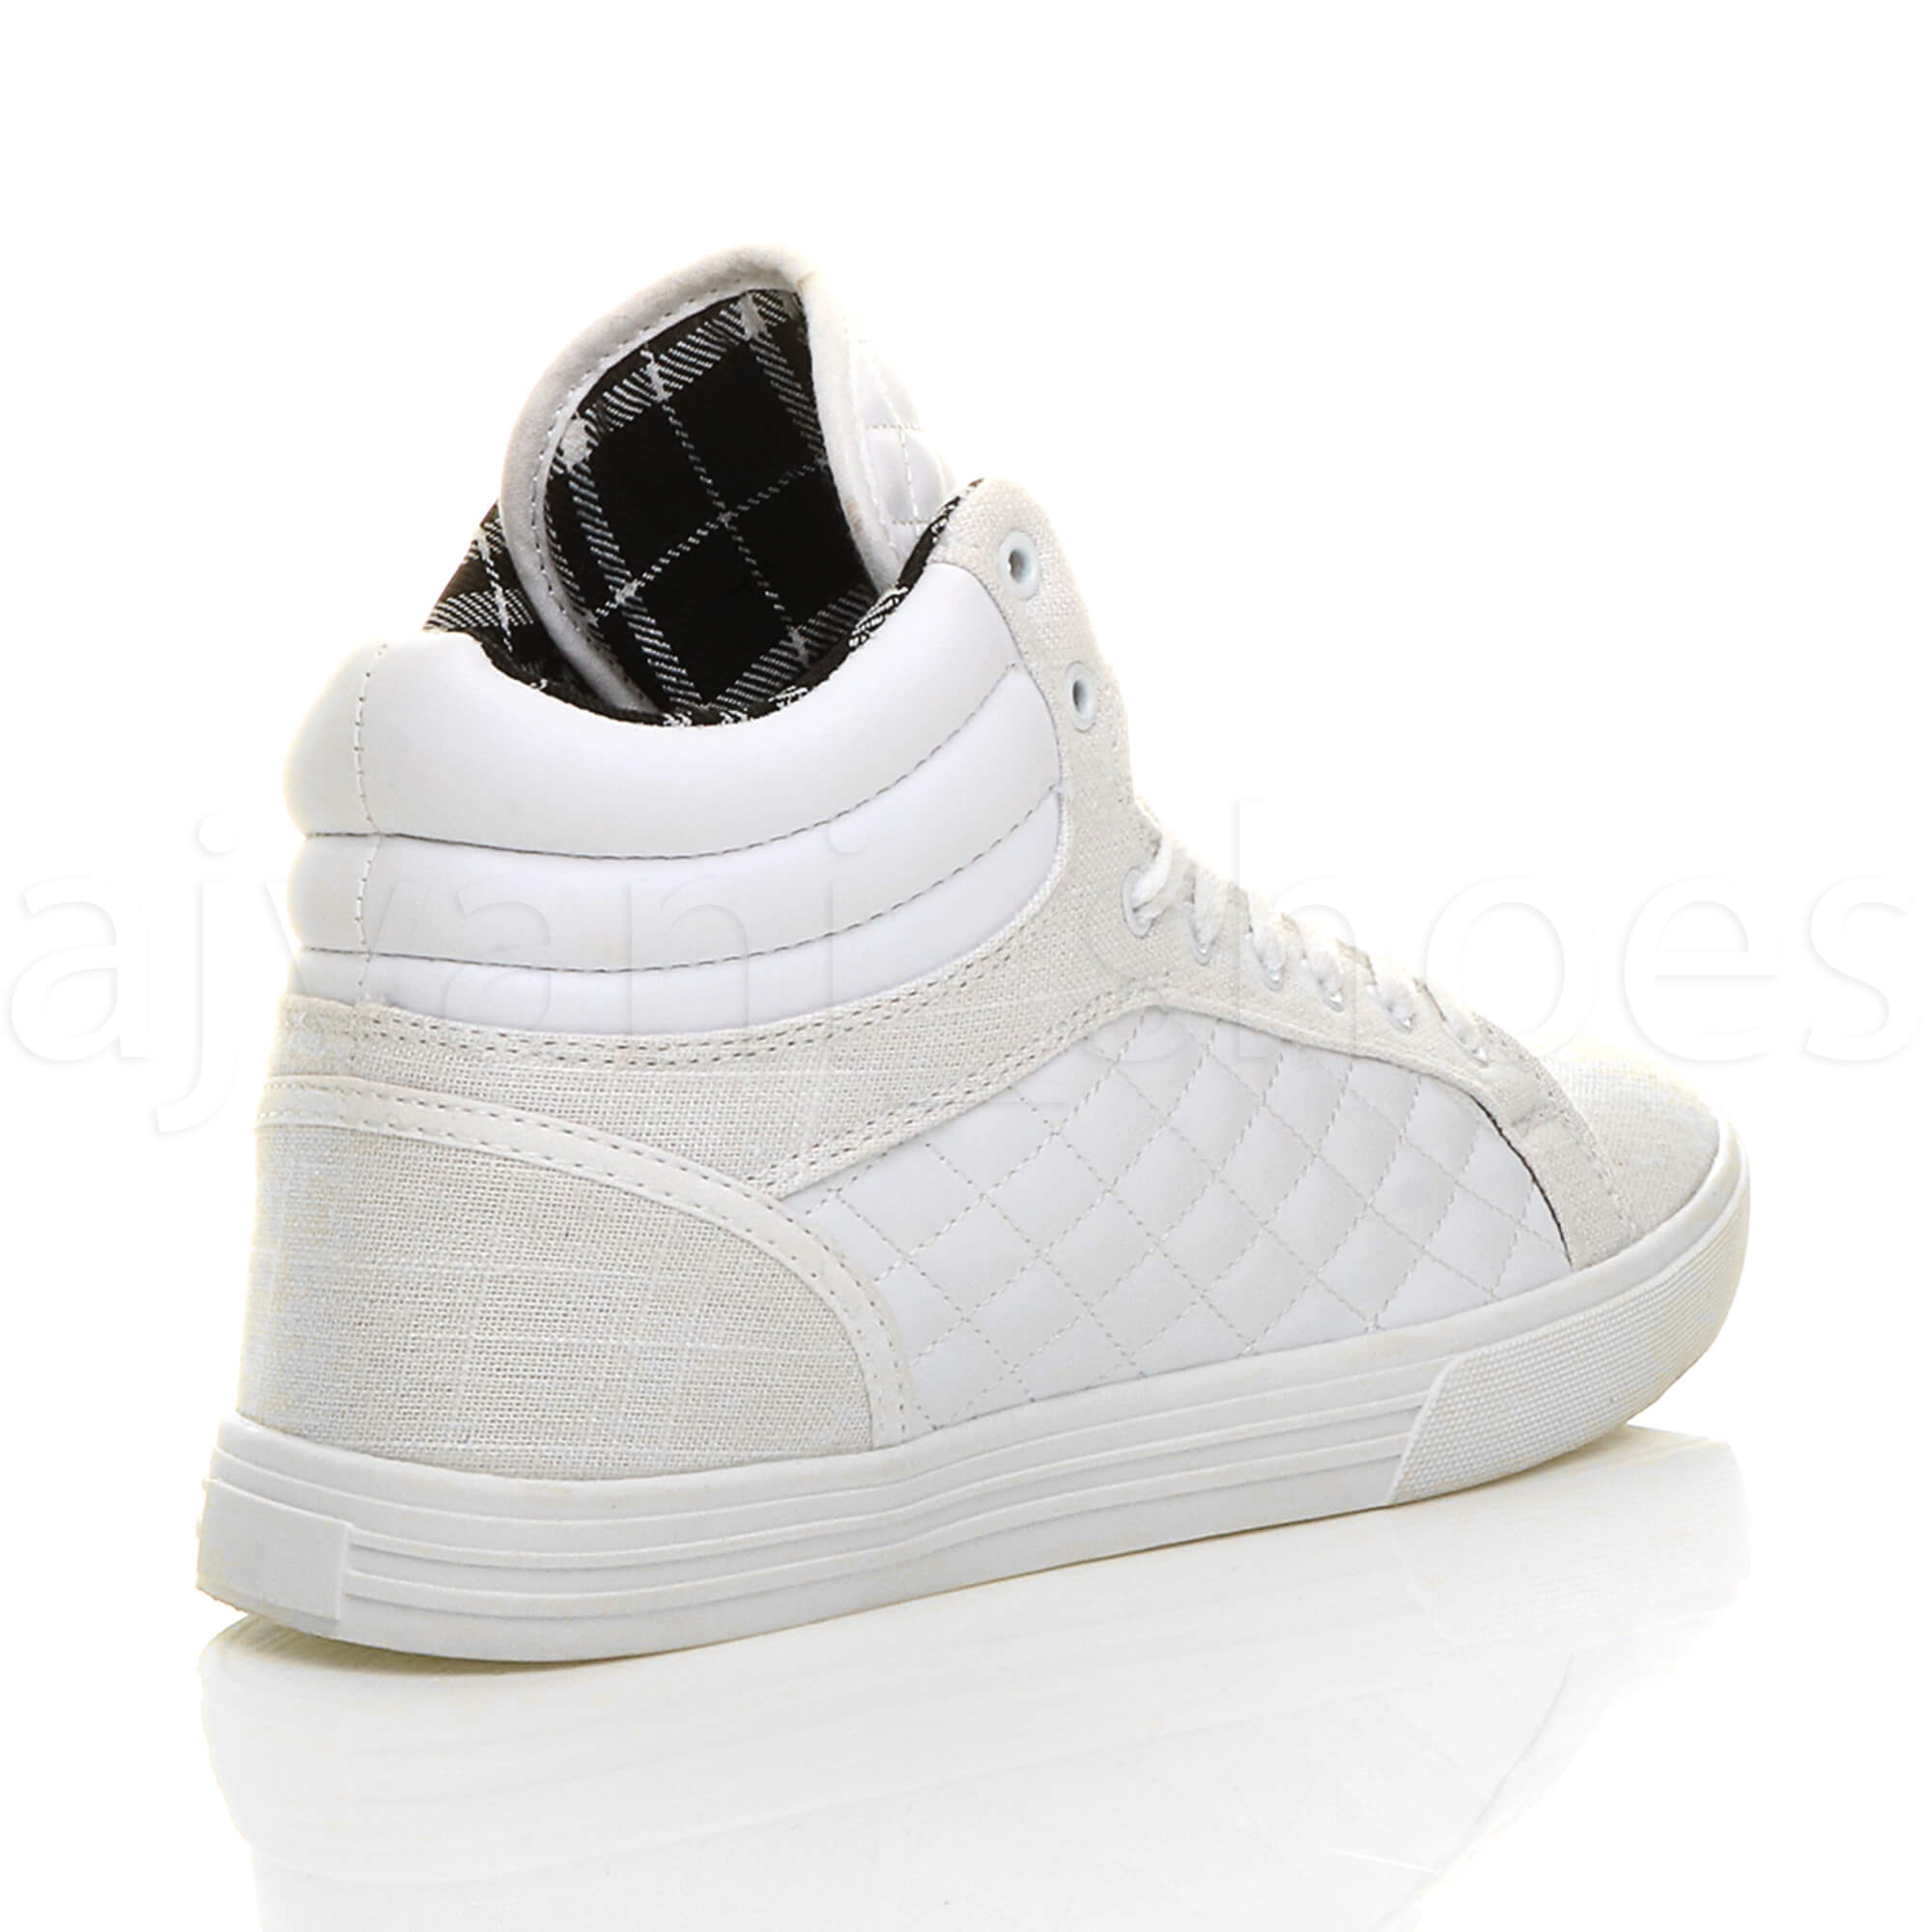 MENS-QUILTED-LACE-UP-FLAT-CASUAL-HI-HIGH-TOP-TRAINERS-SHOES-ANKLE-BOOTS-SIZE thumbnail 33